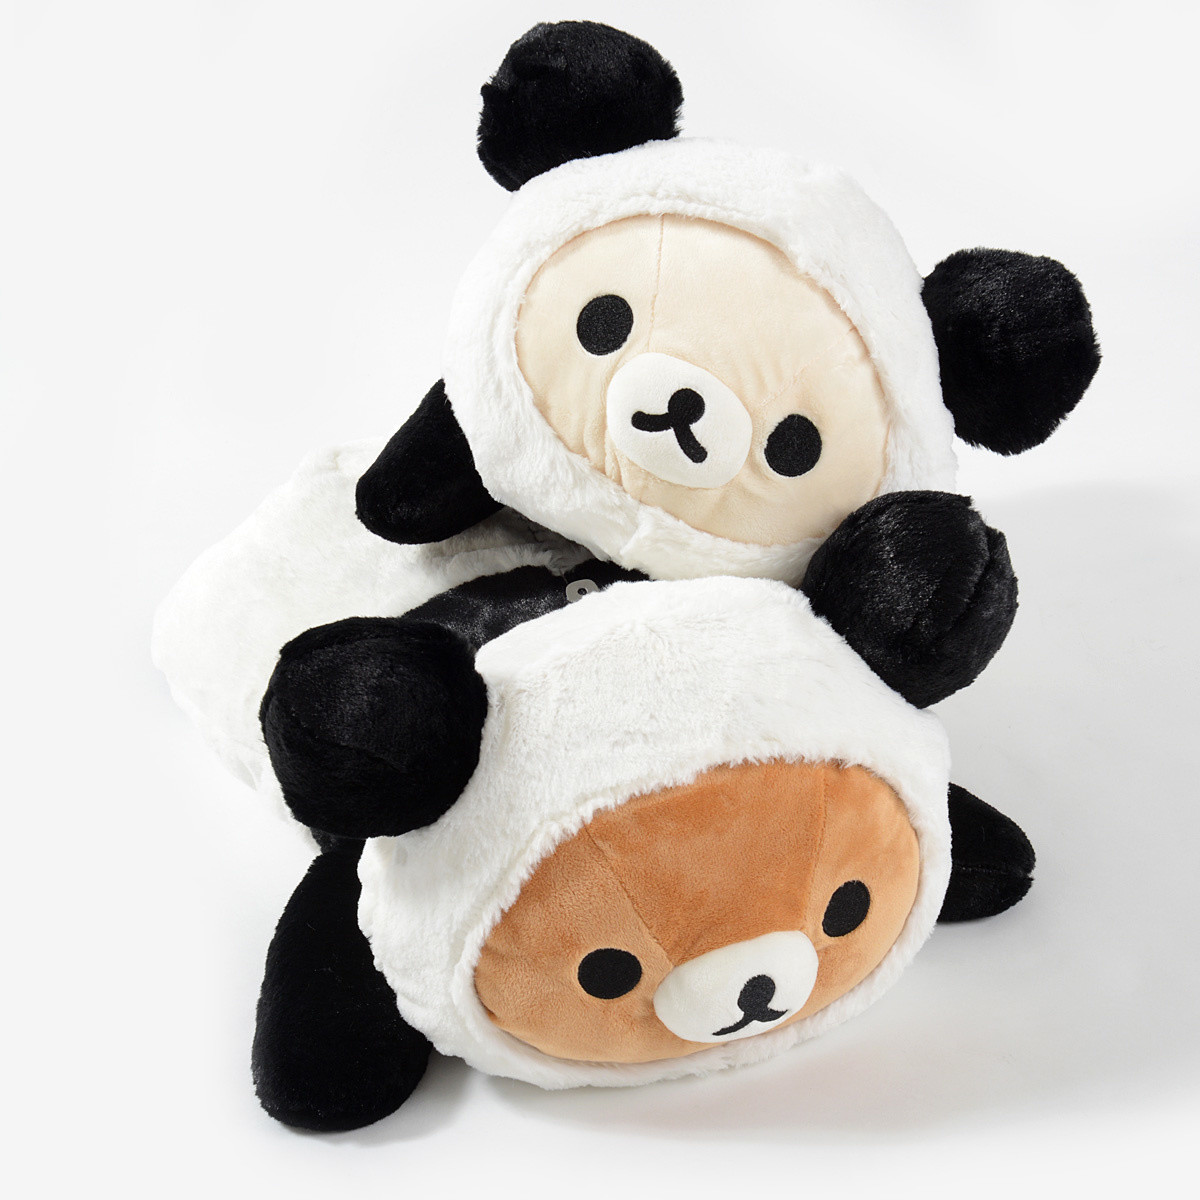 Rilakkuma Panda De Goron Huggable Plush Collection Prone